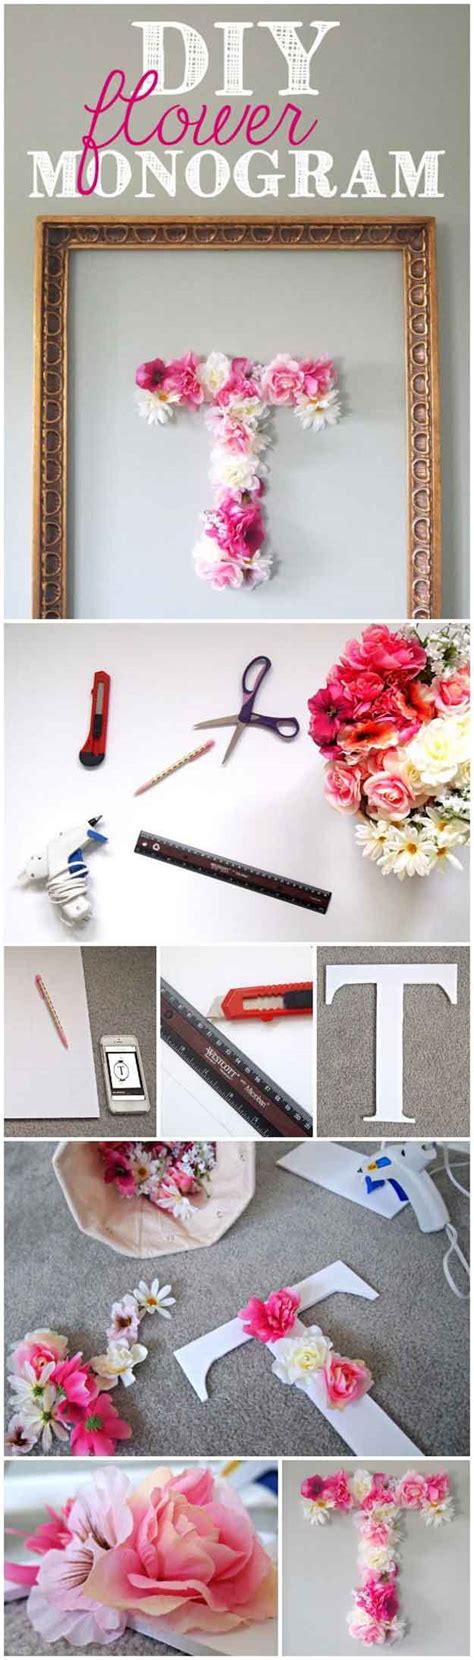 Room Decor Diy Ideas Diy Projects For Bedroom Diy Ready